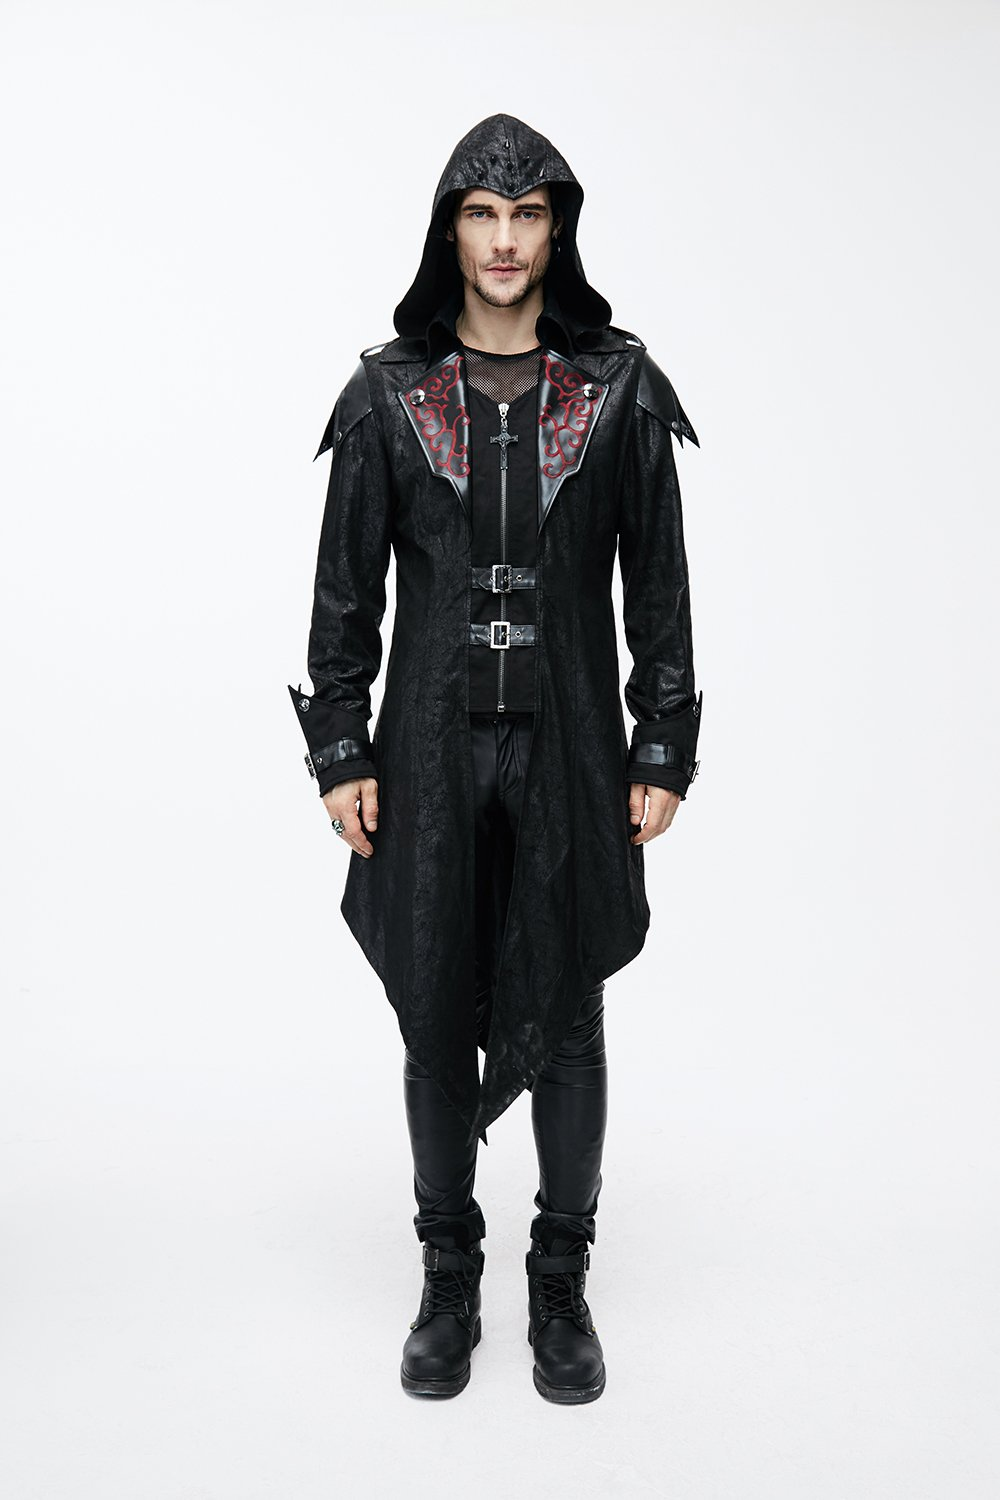 Devil Fashion Punk Men Jackets Faux Leather Steampunk Gothic Swallowtail Coats Autumn Winter Long Hooded Coats Overcoat 5